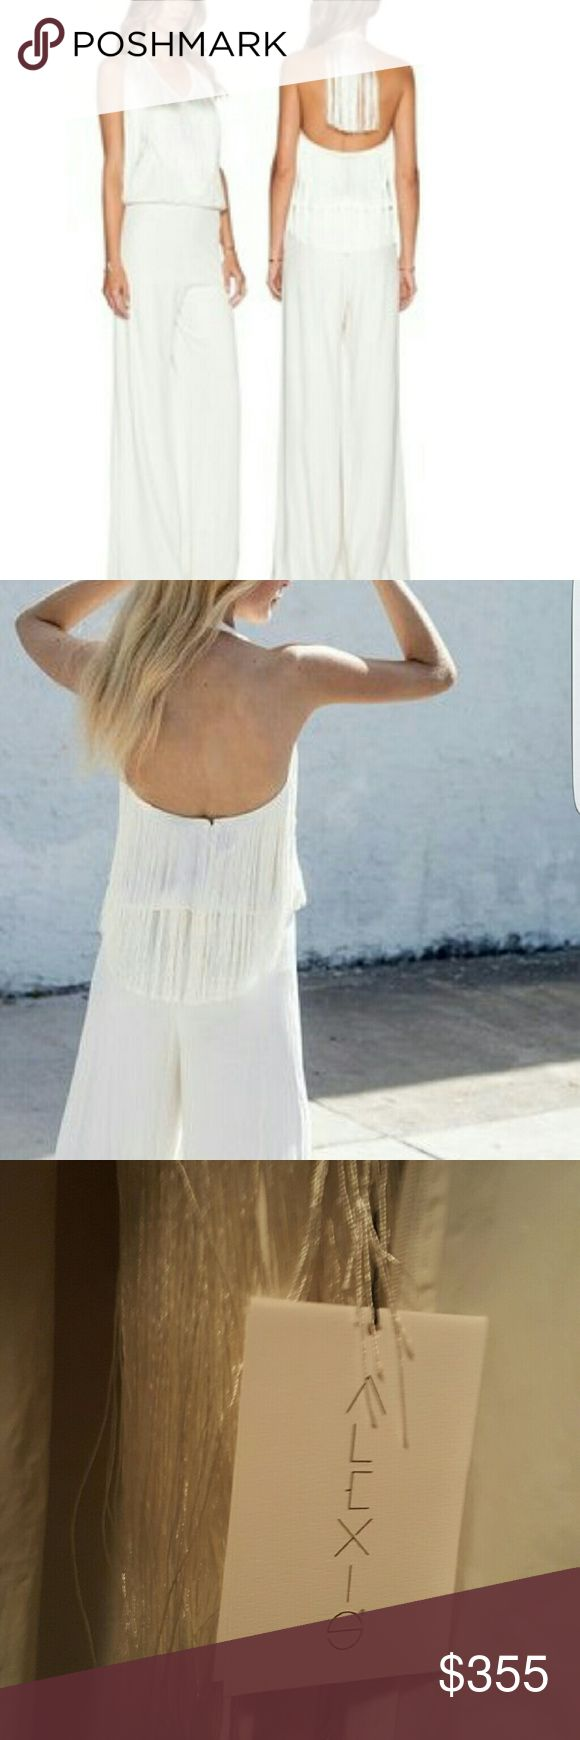 Alexis Isis Jumpsuit white New w/tags sold at Nieman Marcus for $655 Alexis Dresses Backless